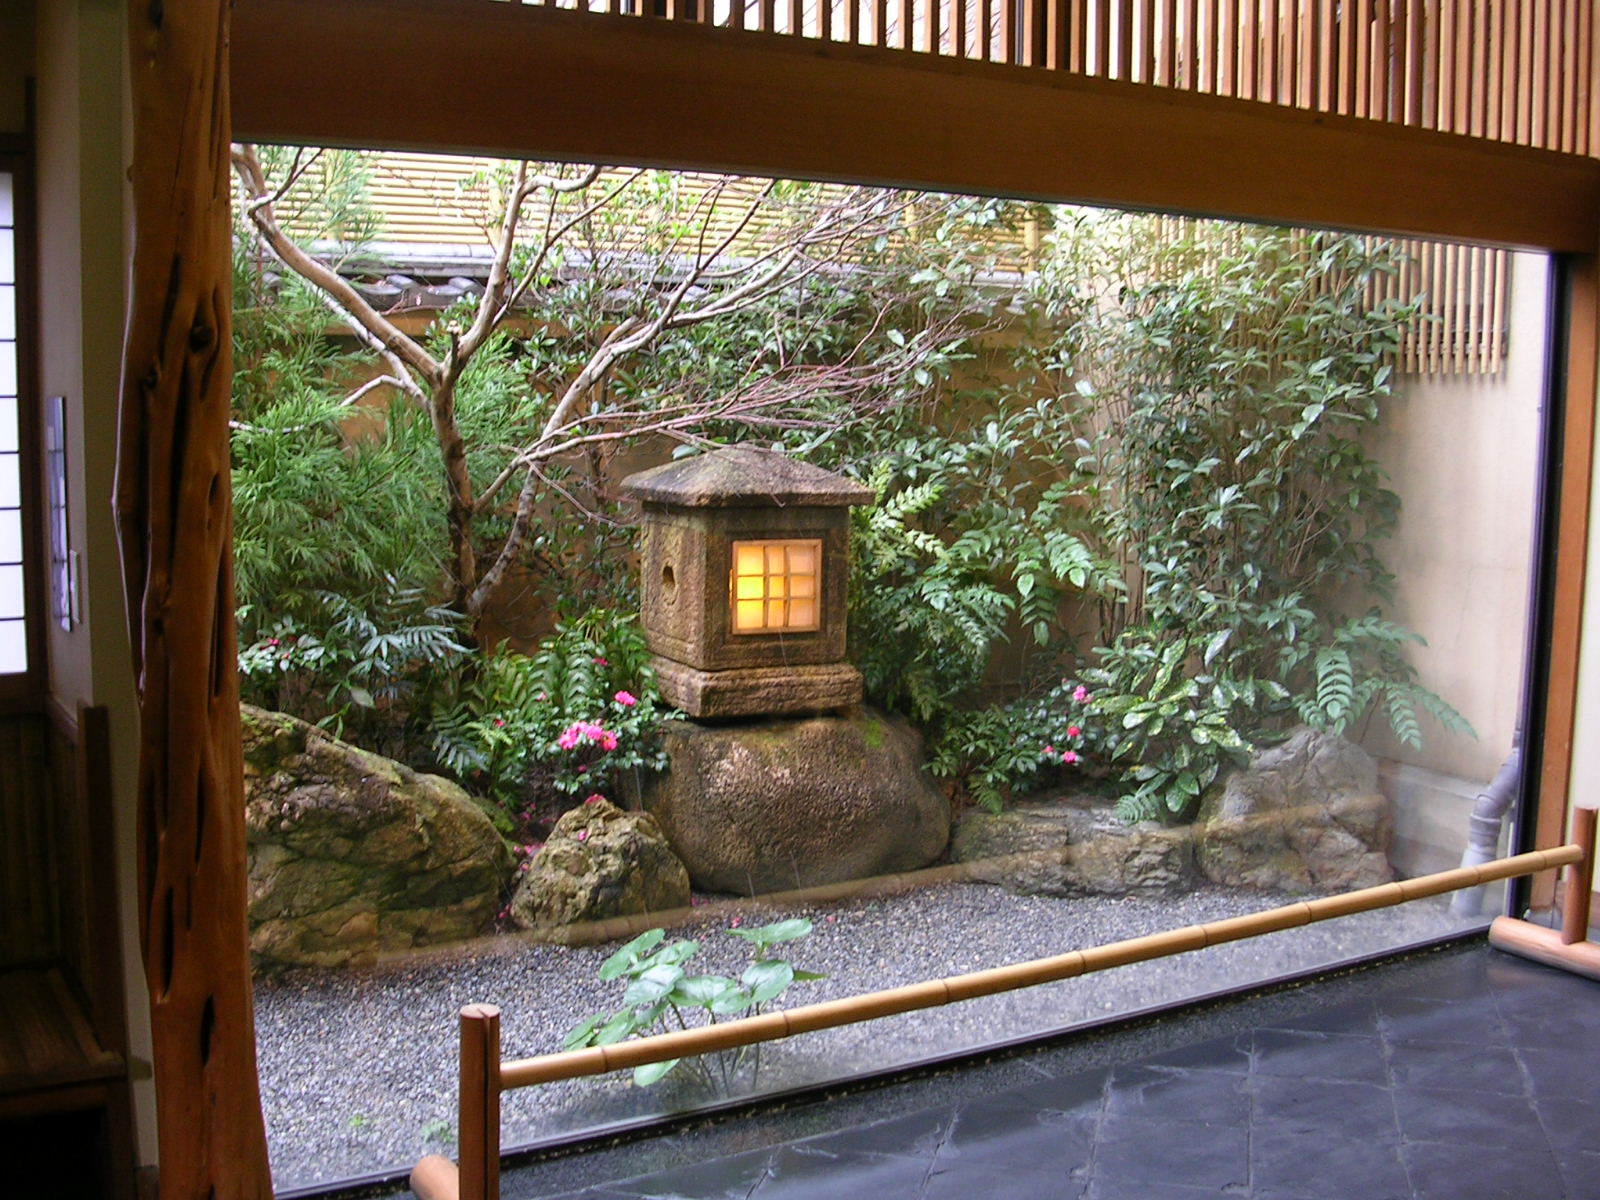 Ryokan for Balcony zen garden ideas